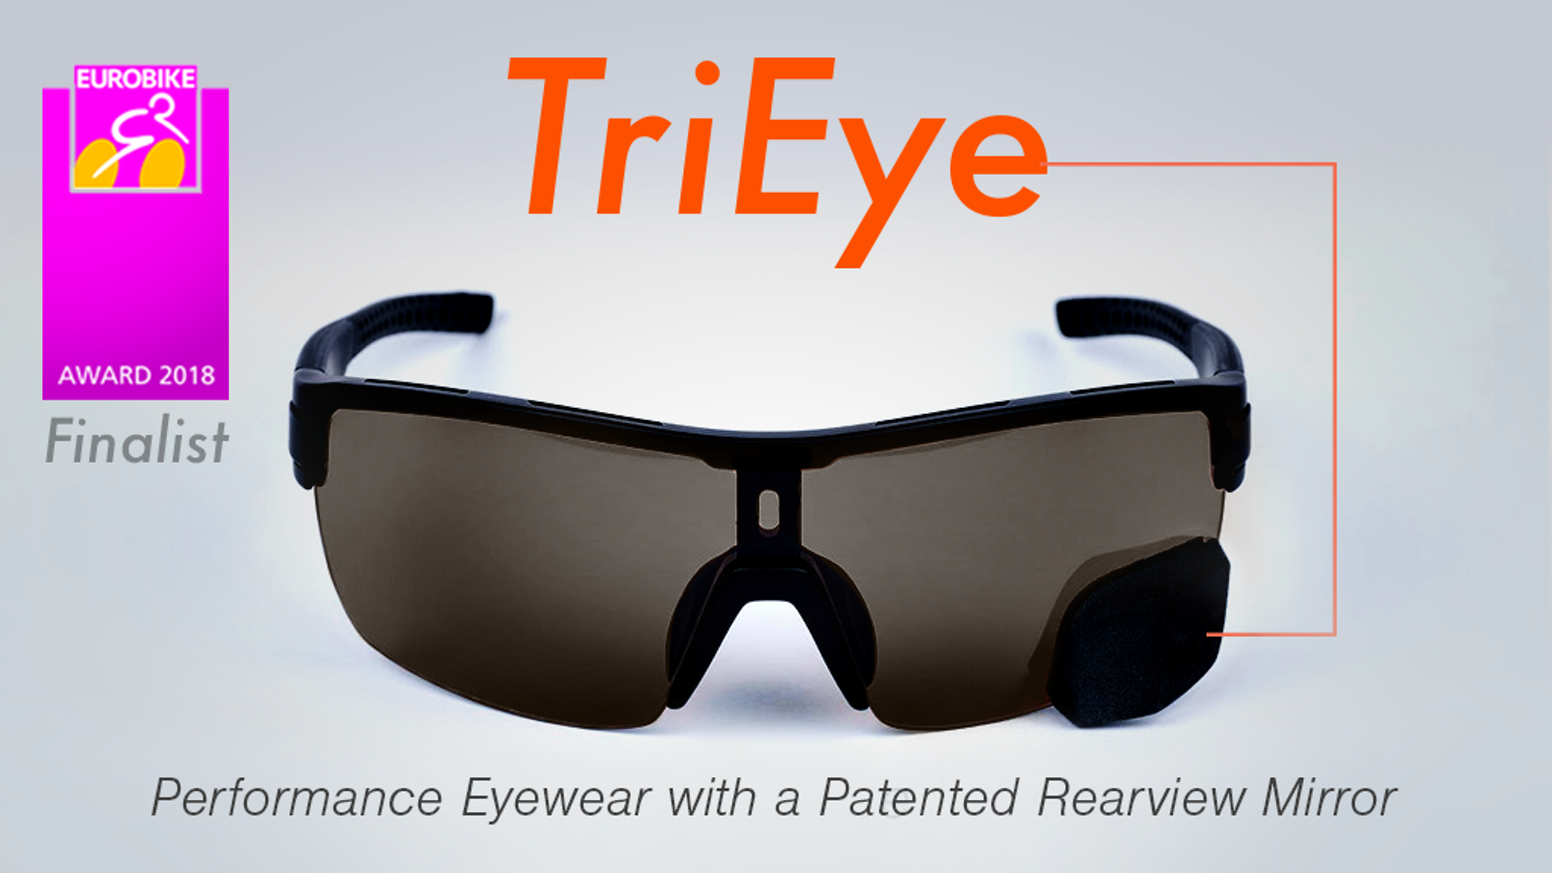 2bff9c3fa4d5 TriEye lets you keep an eye on the road behind with a simple tilt of your